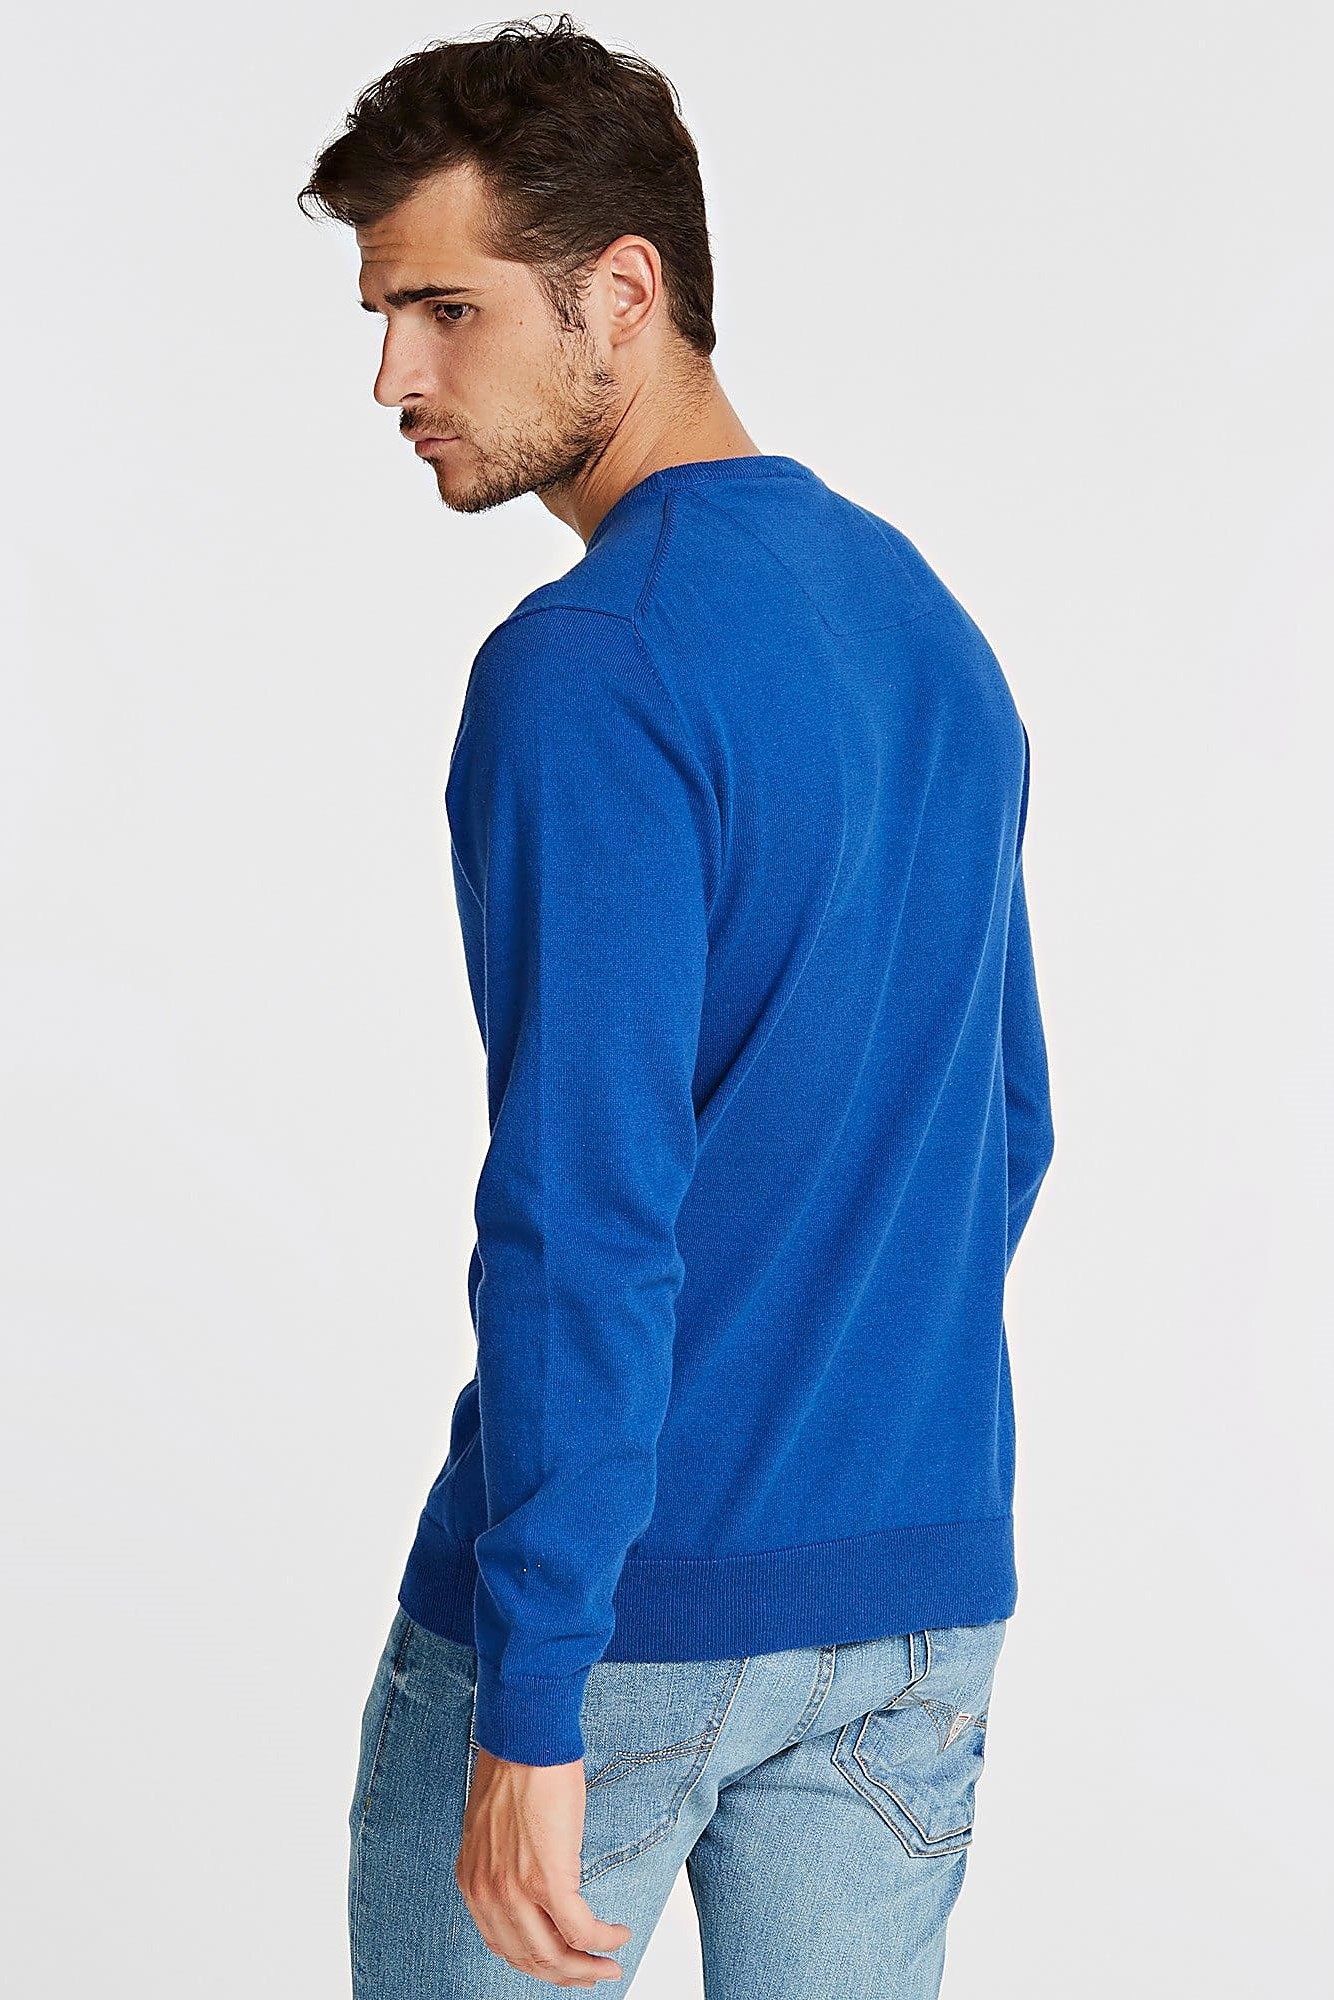 Guess Blue Men's Triangle Logo Sweater